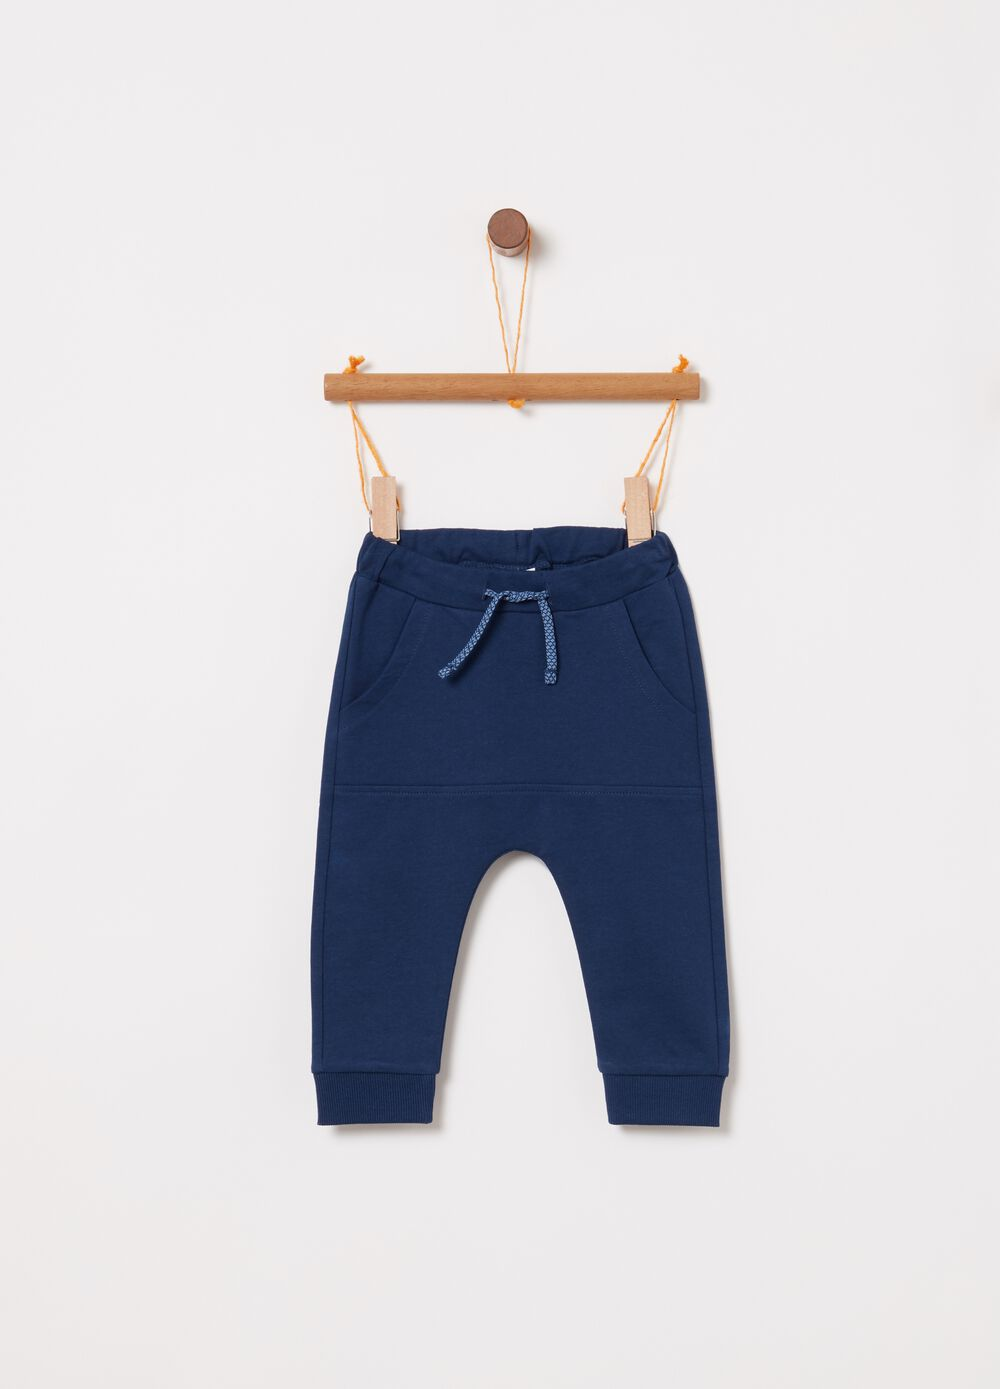 100% cotton trousers with drawstring and pockets